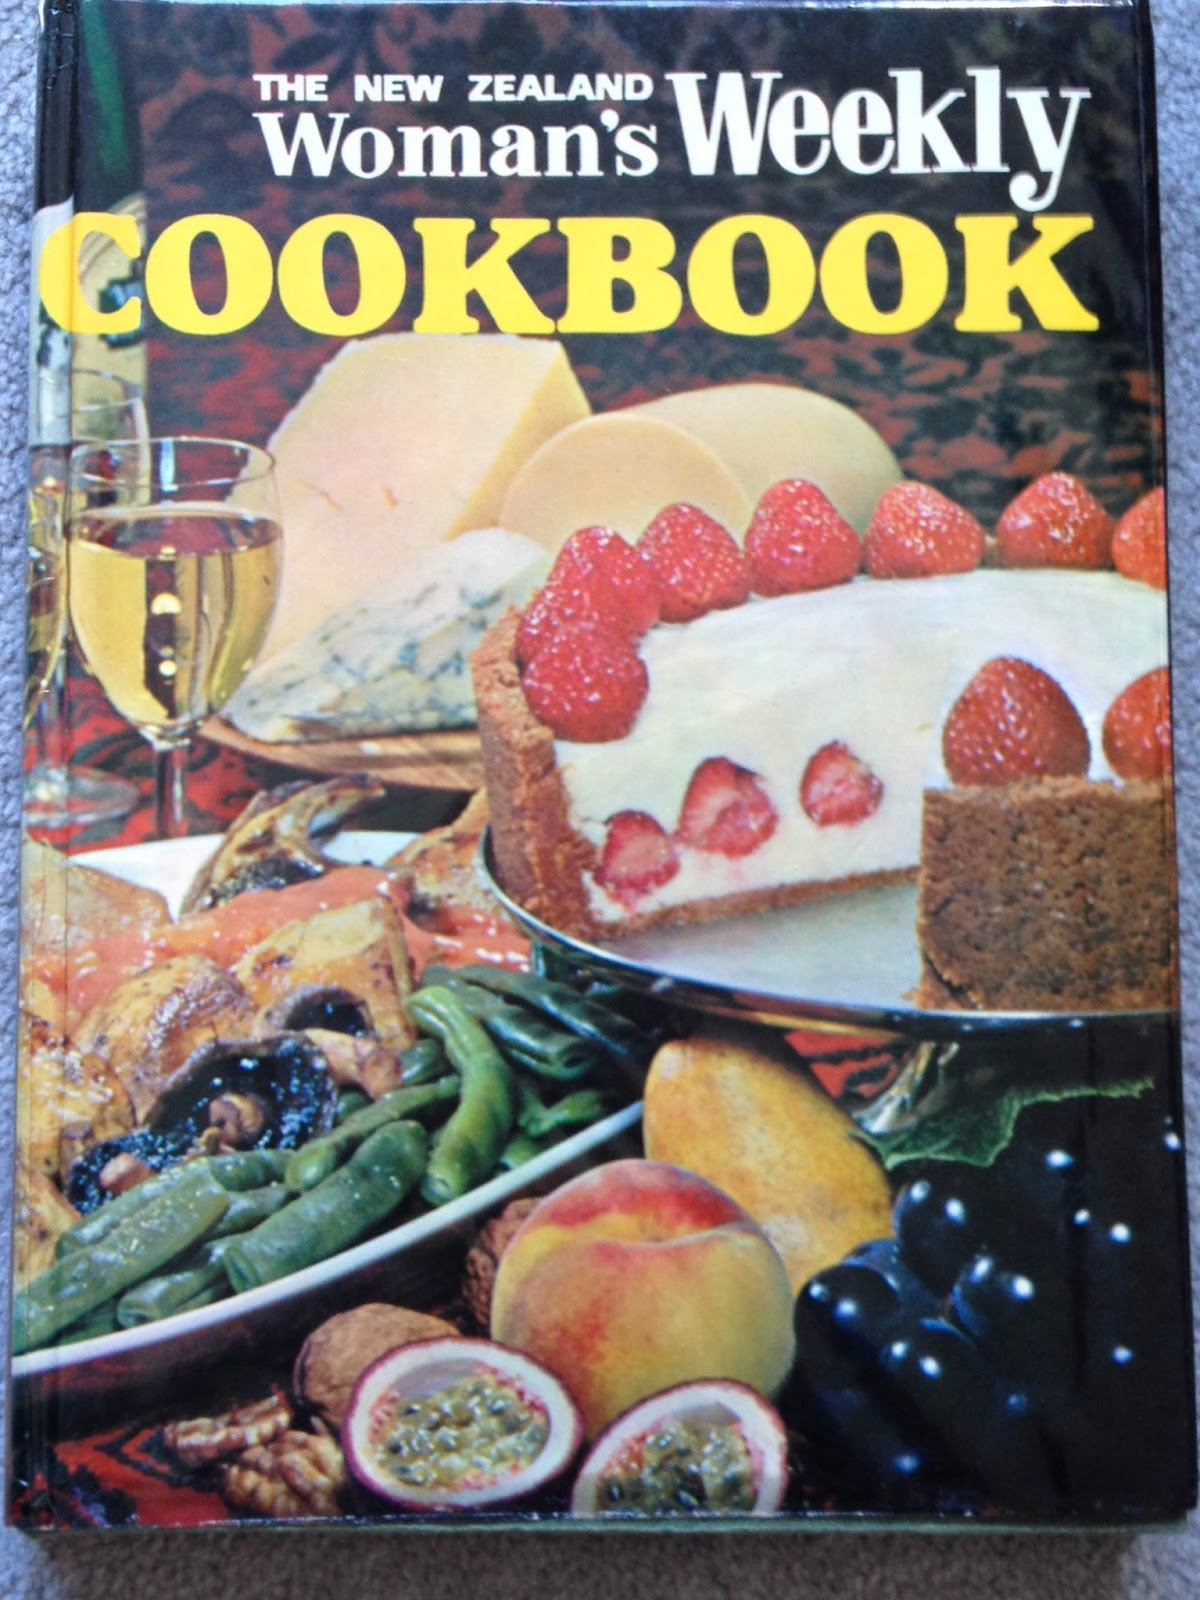 The New Zealand Woman's Weekly Cookbook, 1971 Hardback